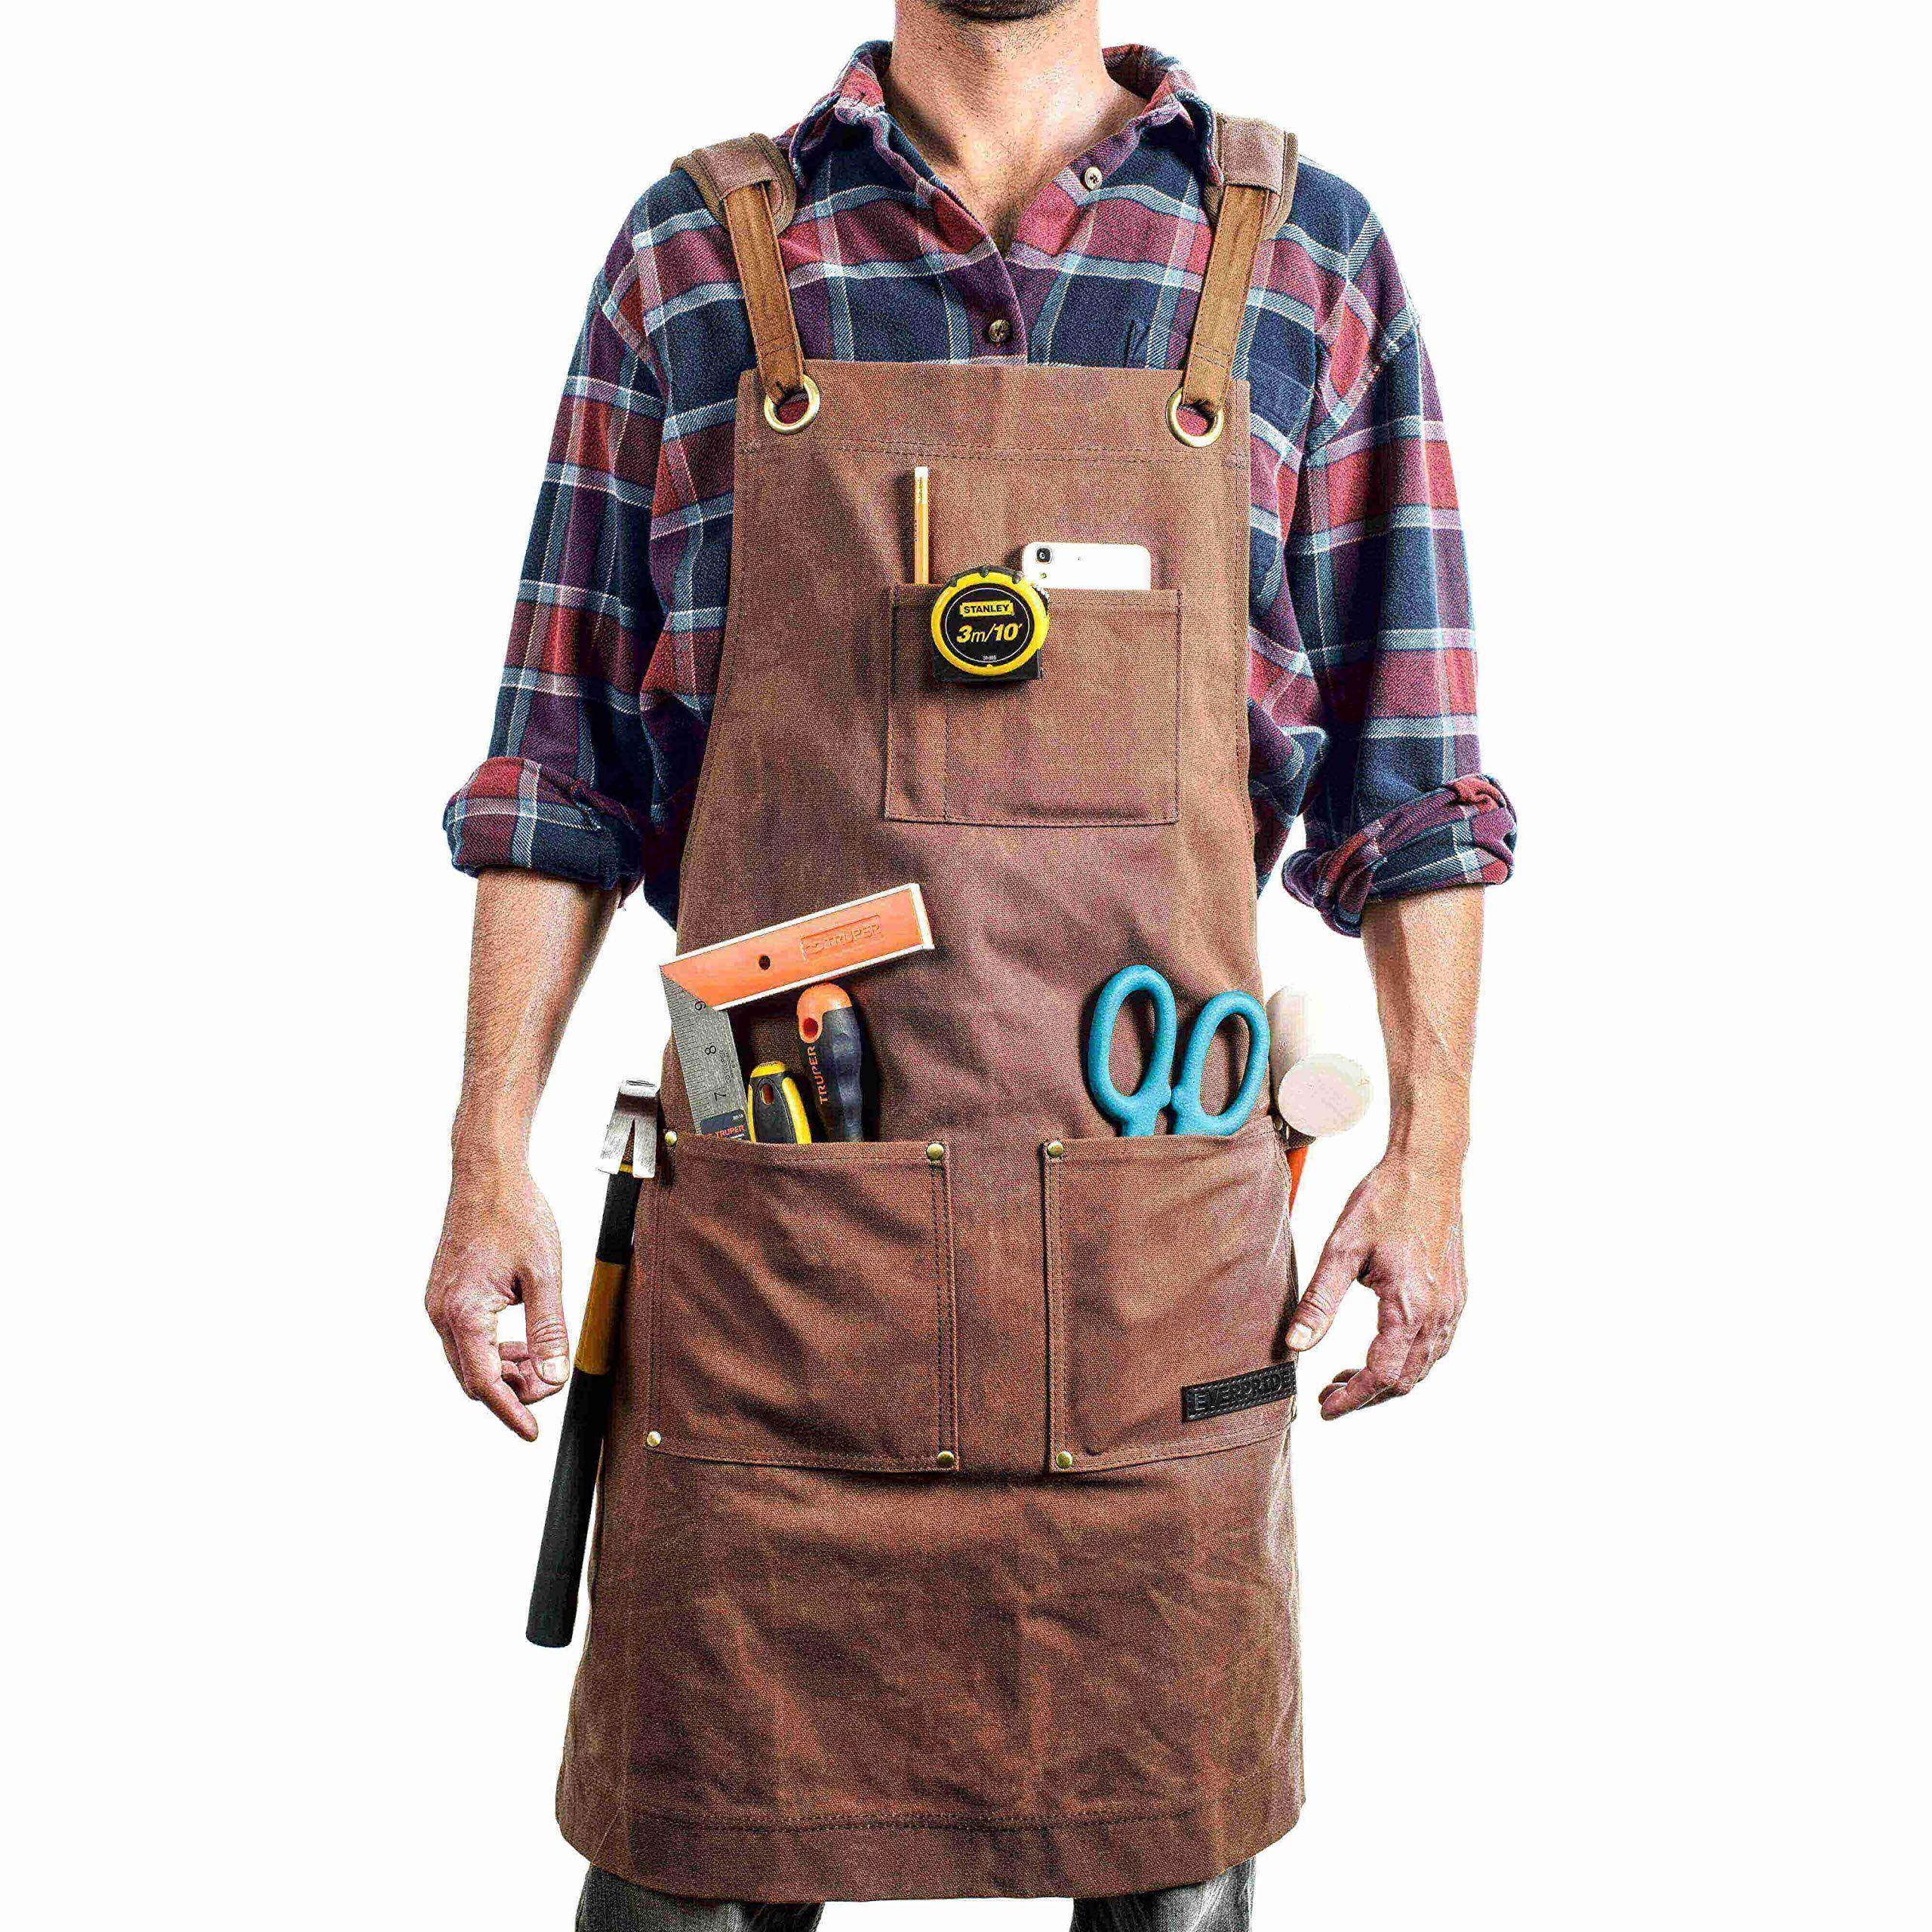 EVERPRIDE Waxed Canvas Apron (Heavy-Duty) All-Purpose Woodworking & Utility Coverall for Men & Women | Reinforced Straps, Multiple Pockets | Adjustable Up To XXL | Waterproof & Durable by EVERPRIDE